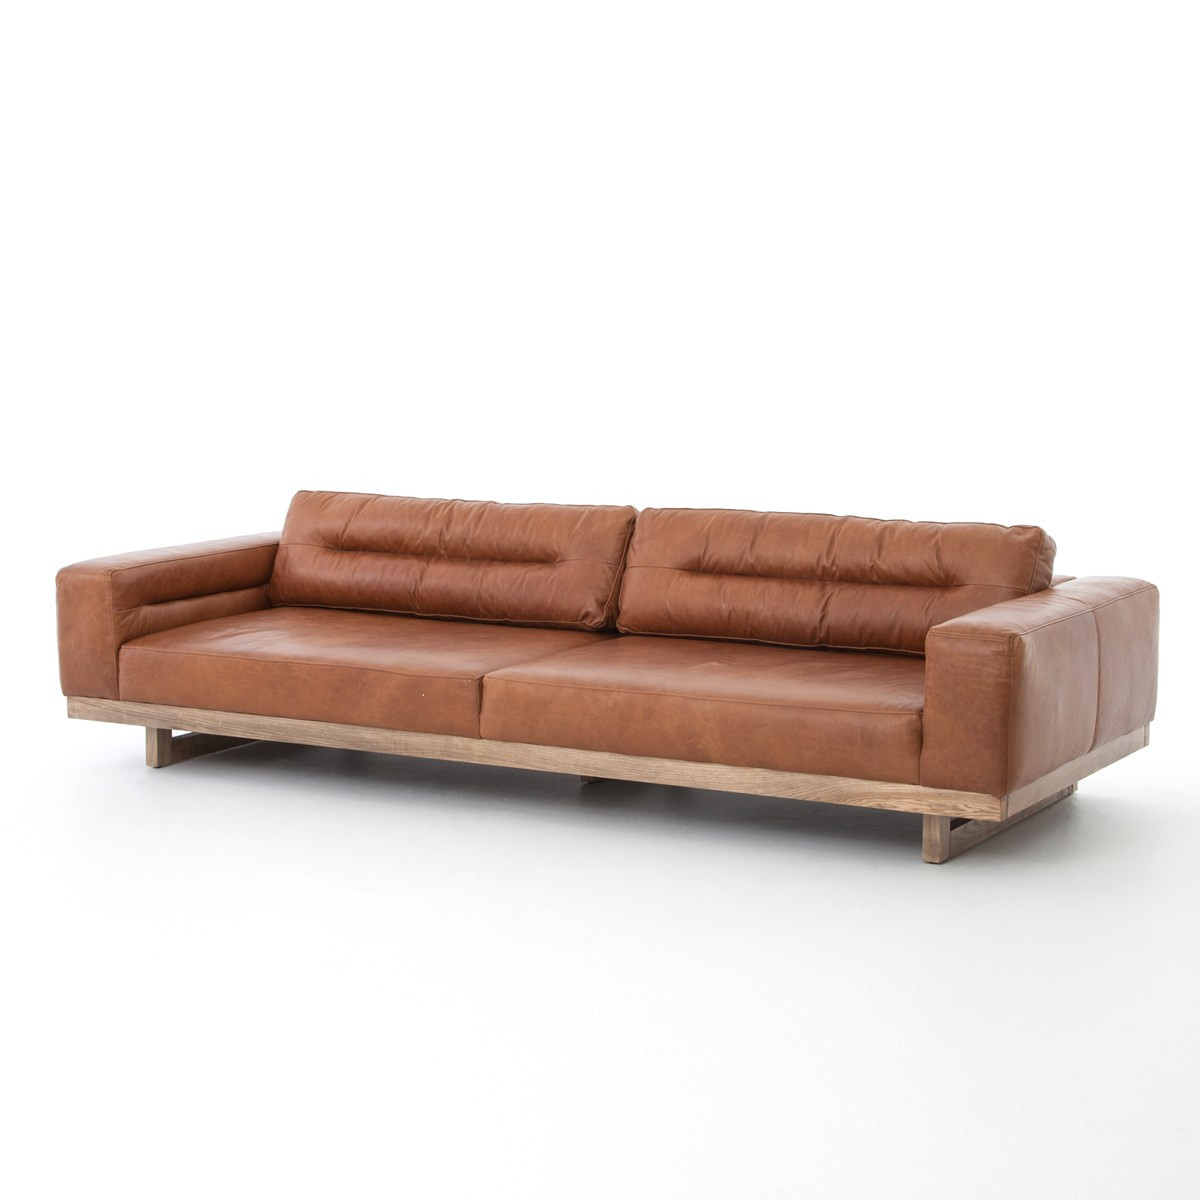 modern low back sofas traditional living room furniture froster contemporary leather sofa zin home